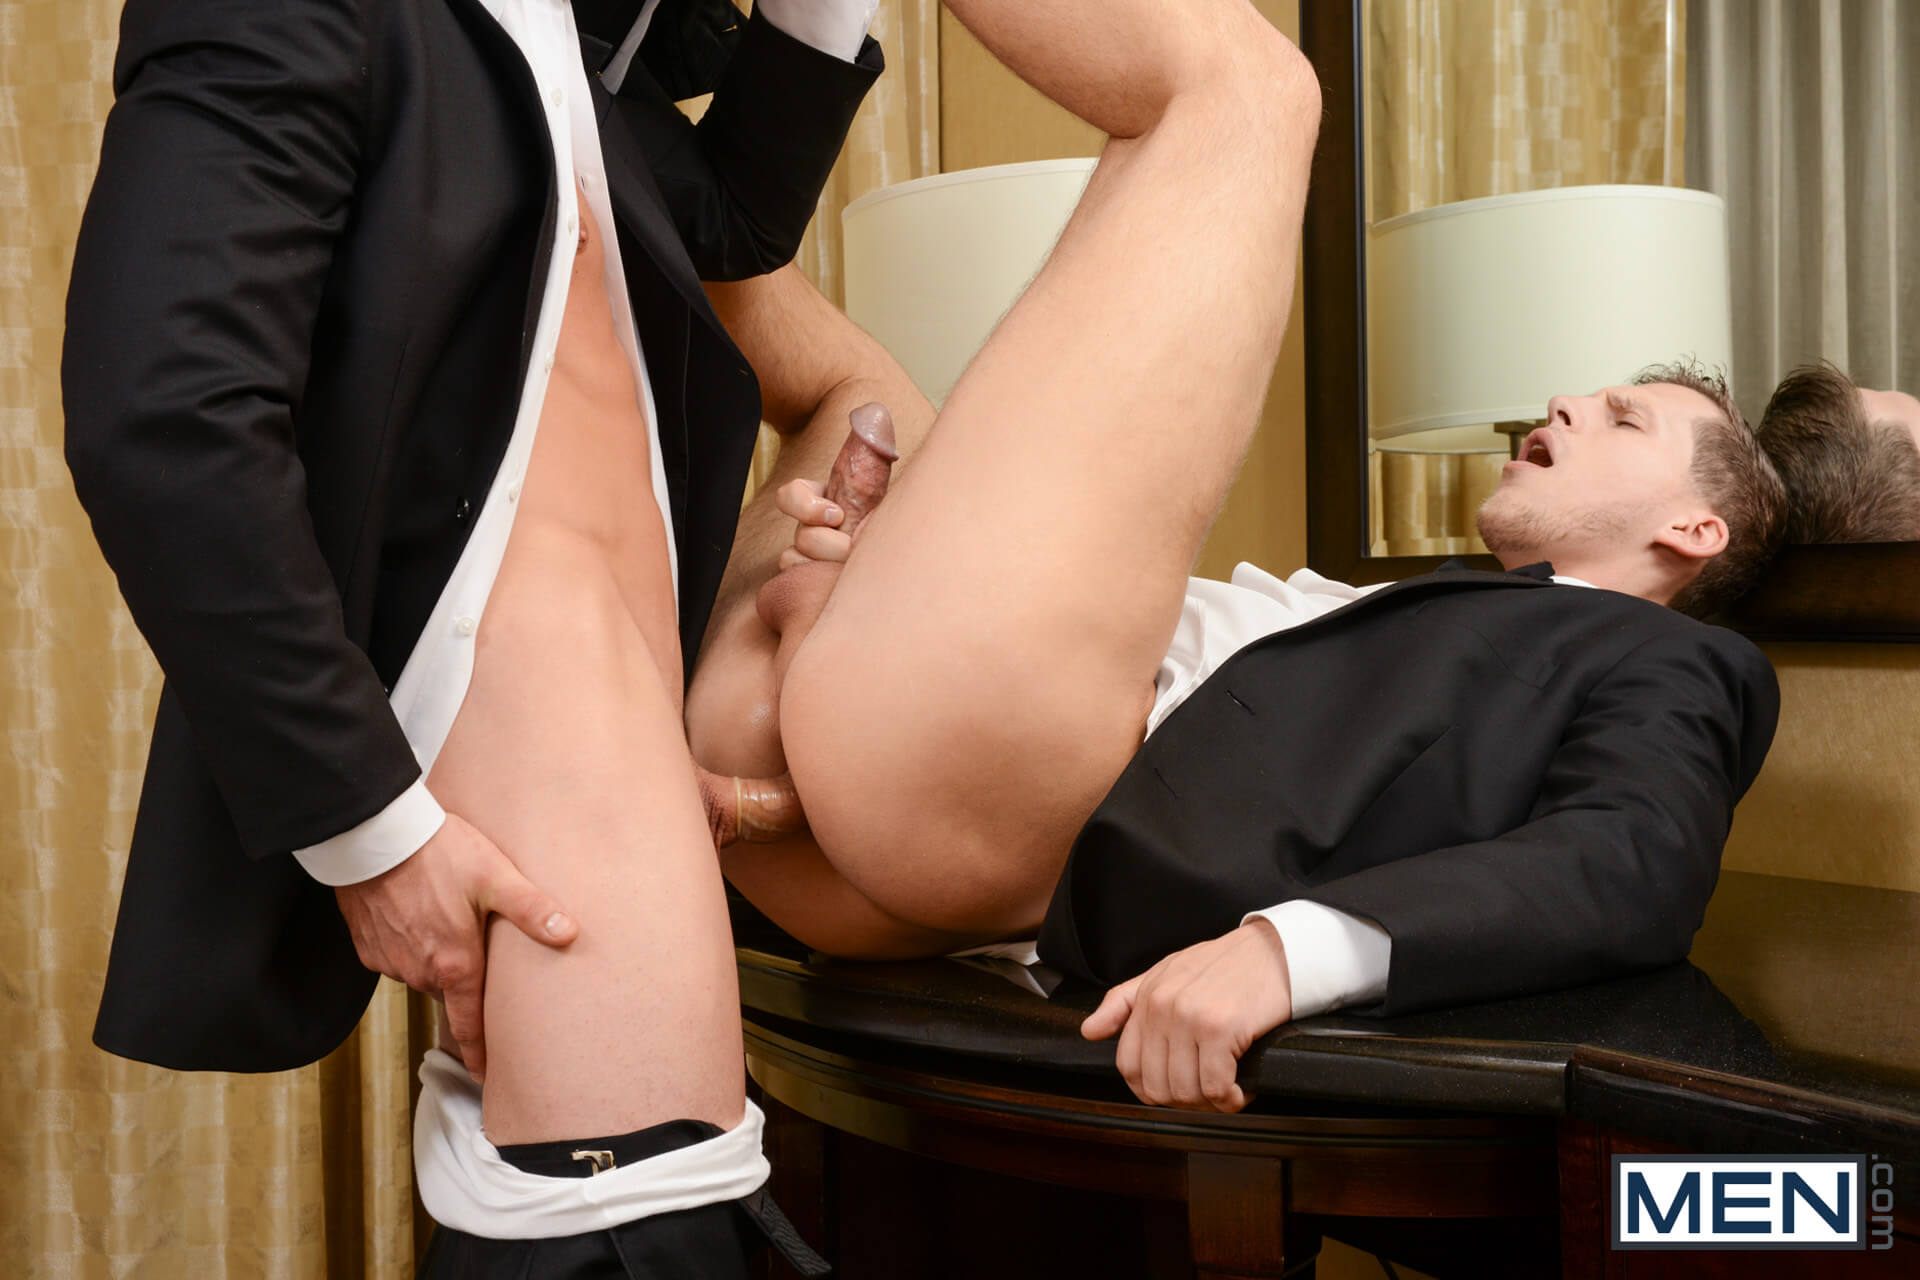 men str8 to gay the groomsmen part 1 darin silvers roman todd gay porn blog image 19